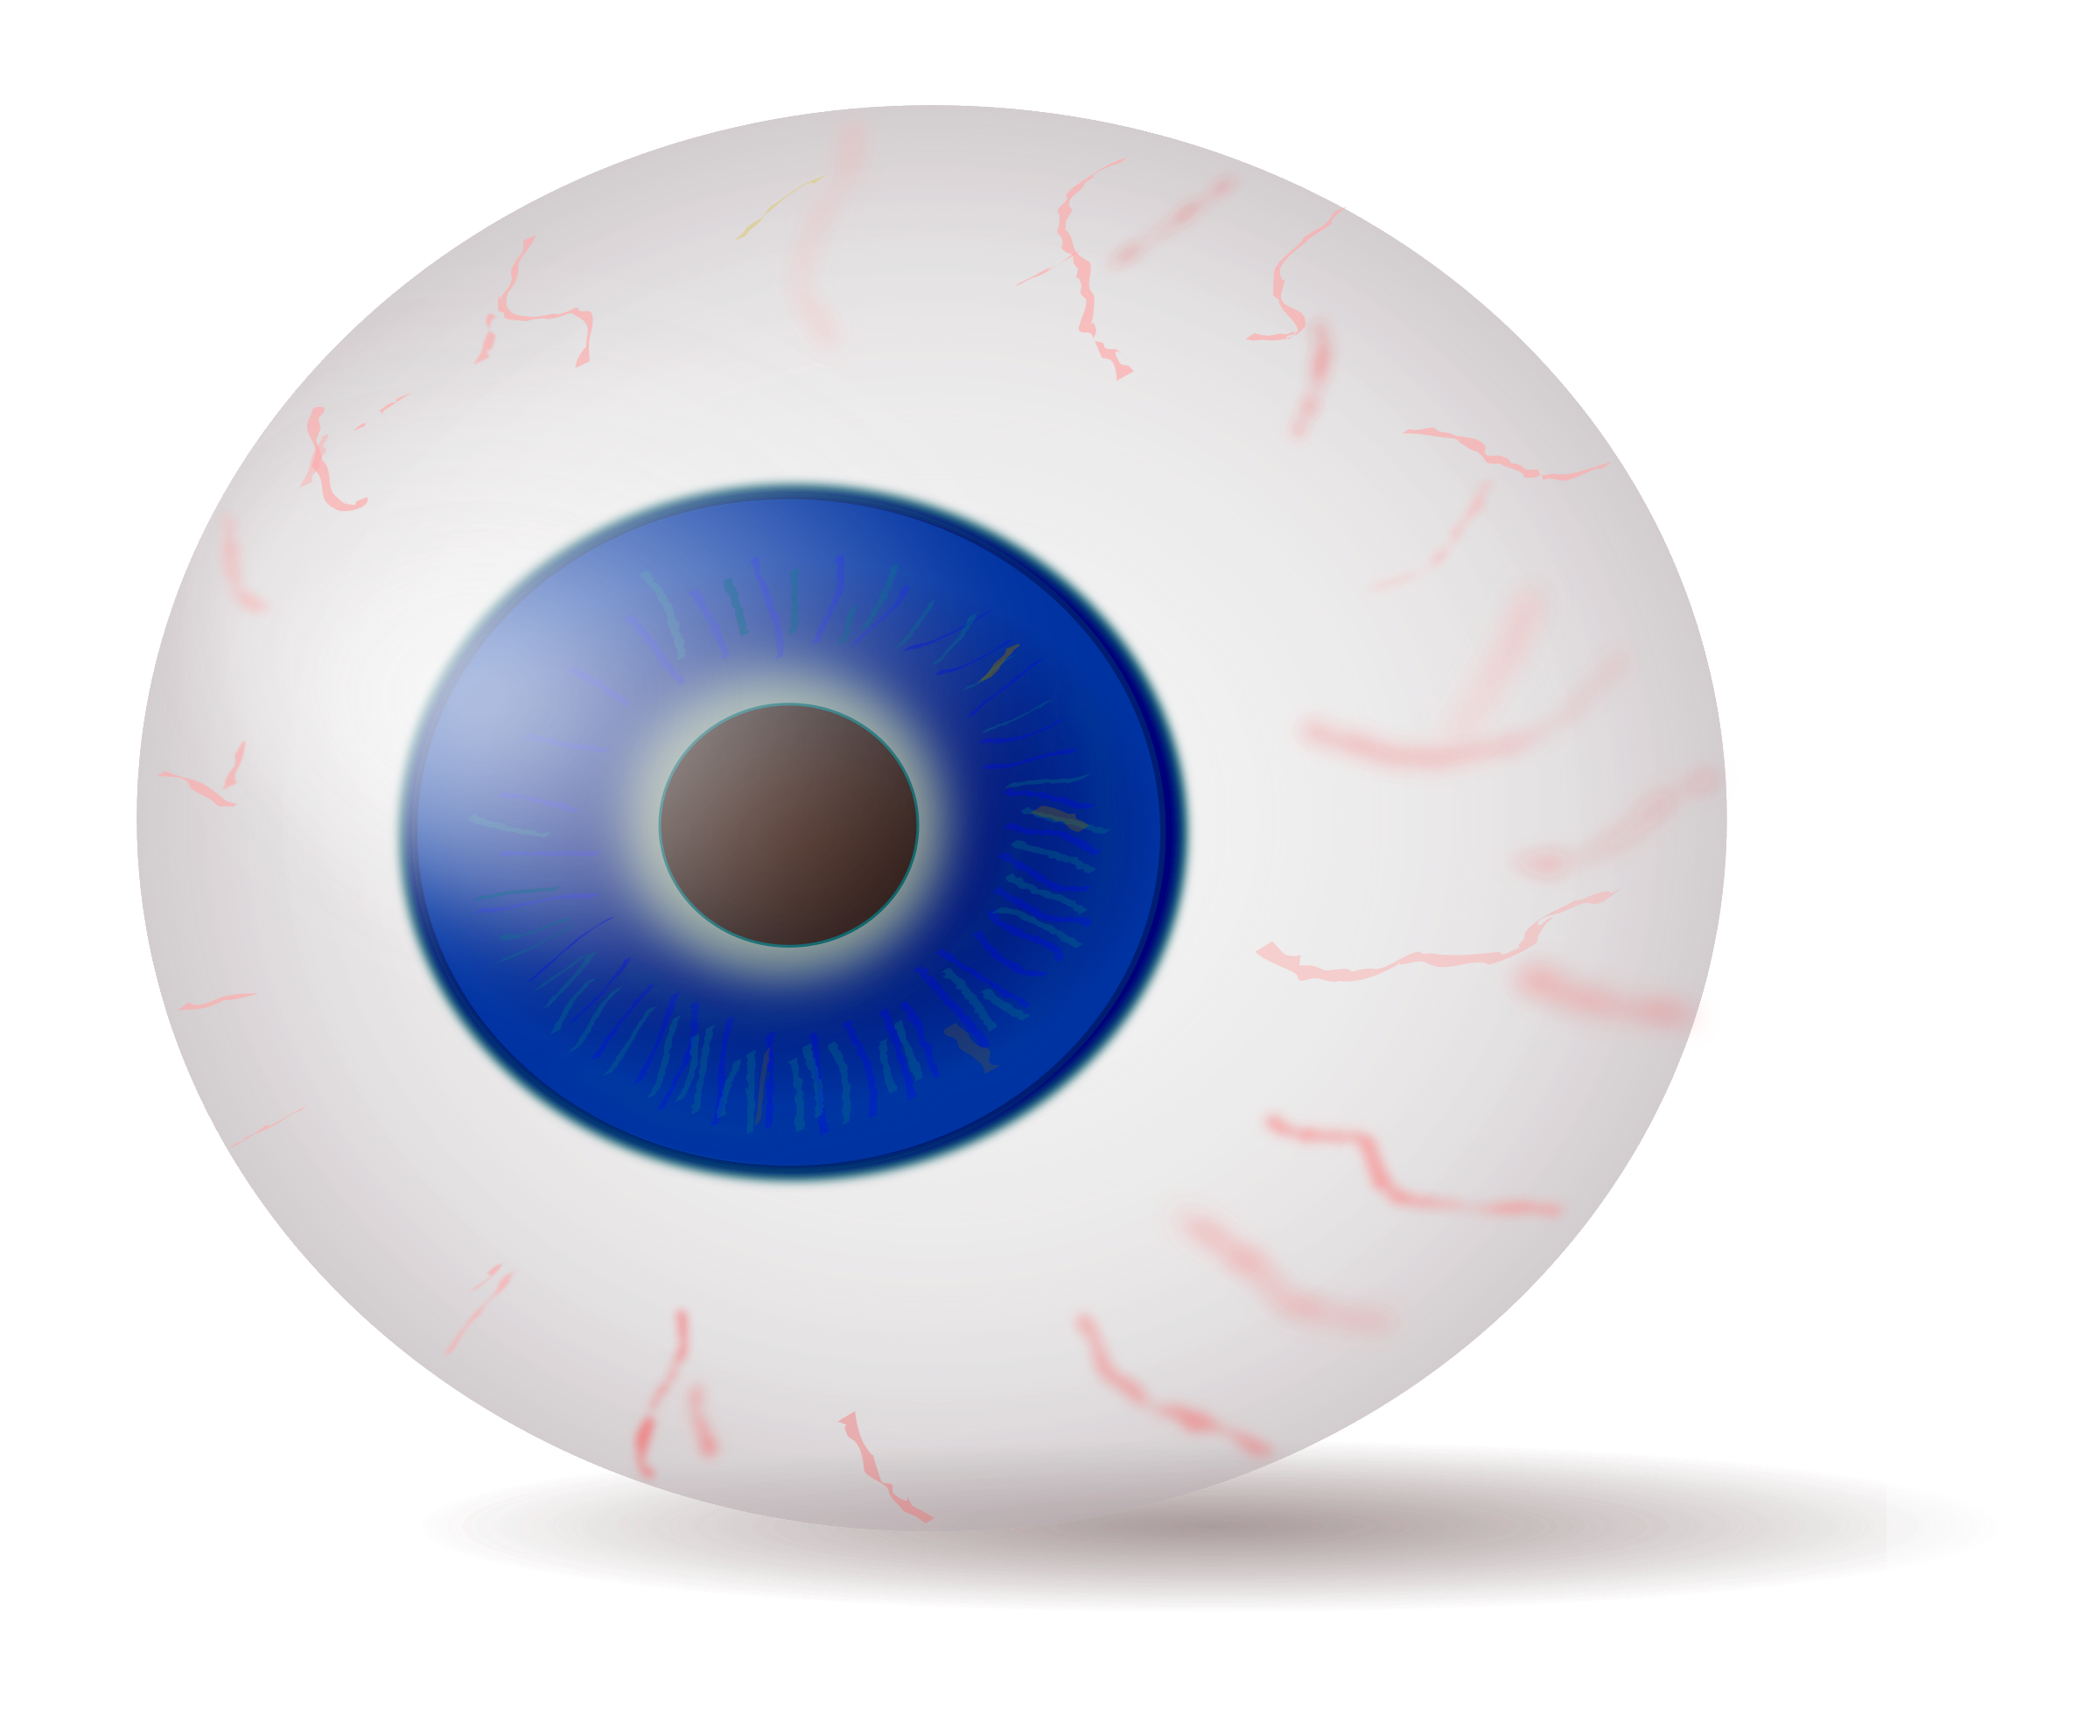 Blue Eyes clipart realistic Clipart blue Eyeball realistic blue